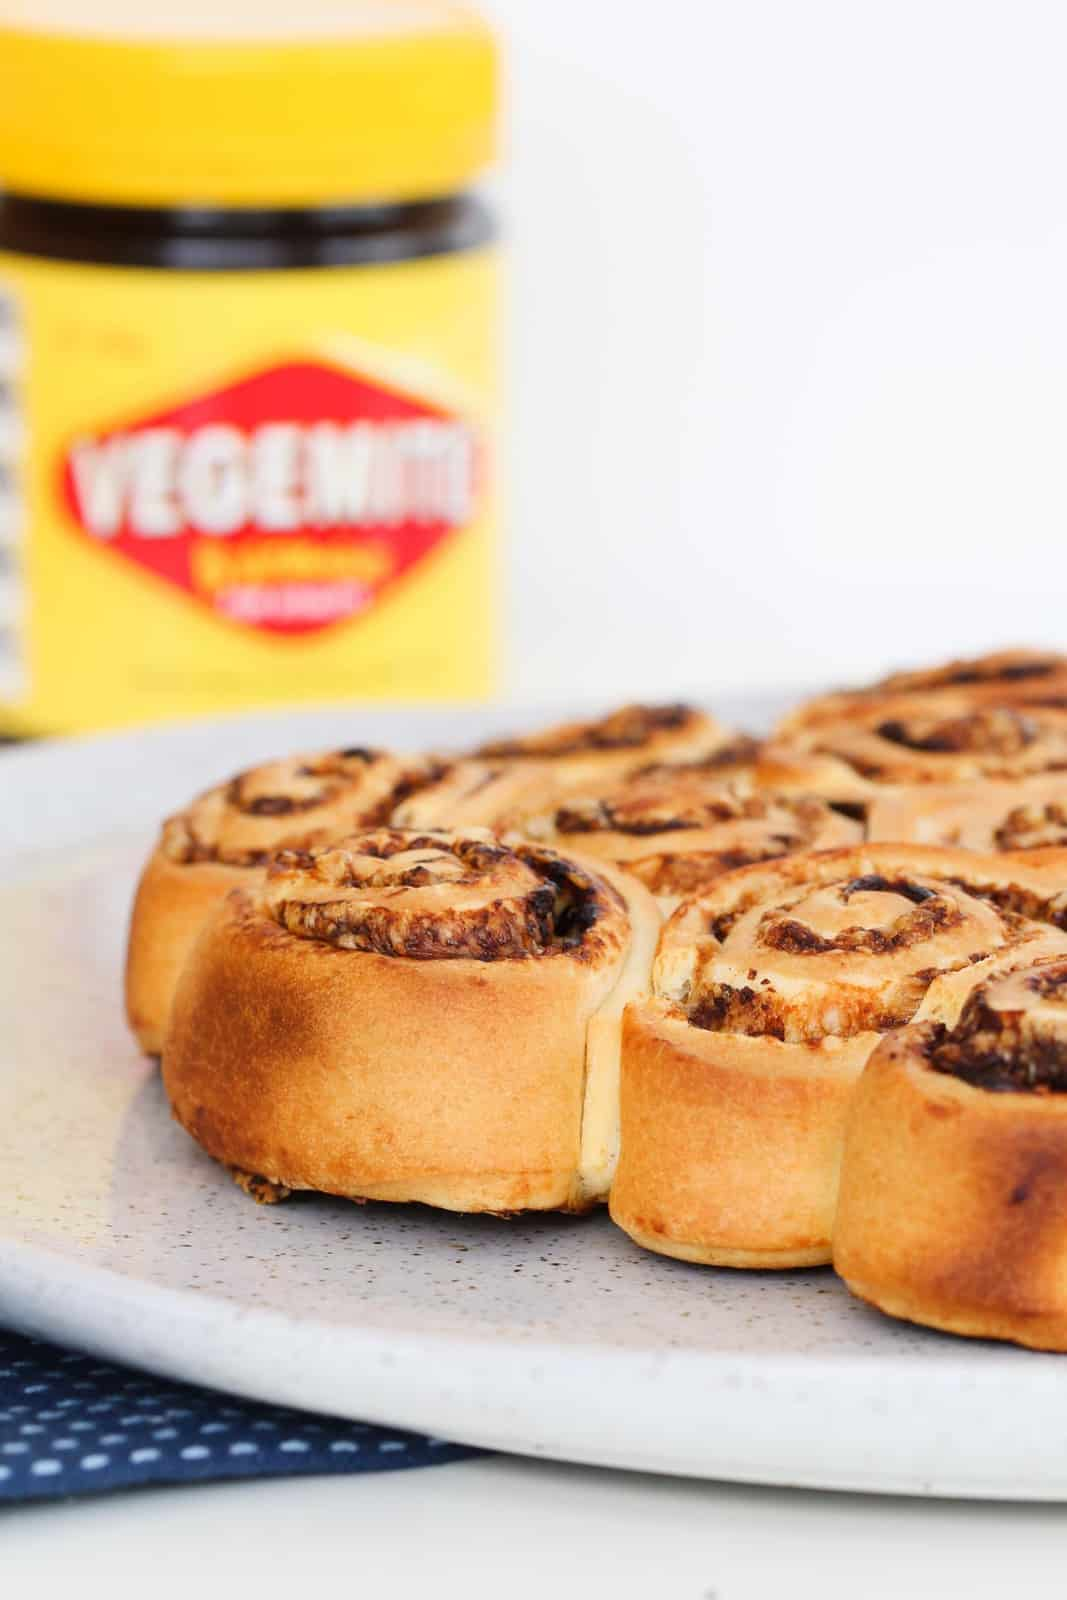 A speckled white plate with cheese and vegemite bread scrolls and a blurred Vegemite jar in the background.